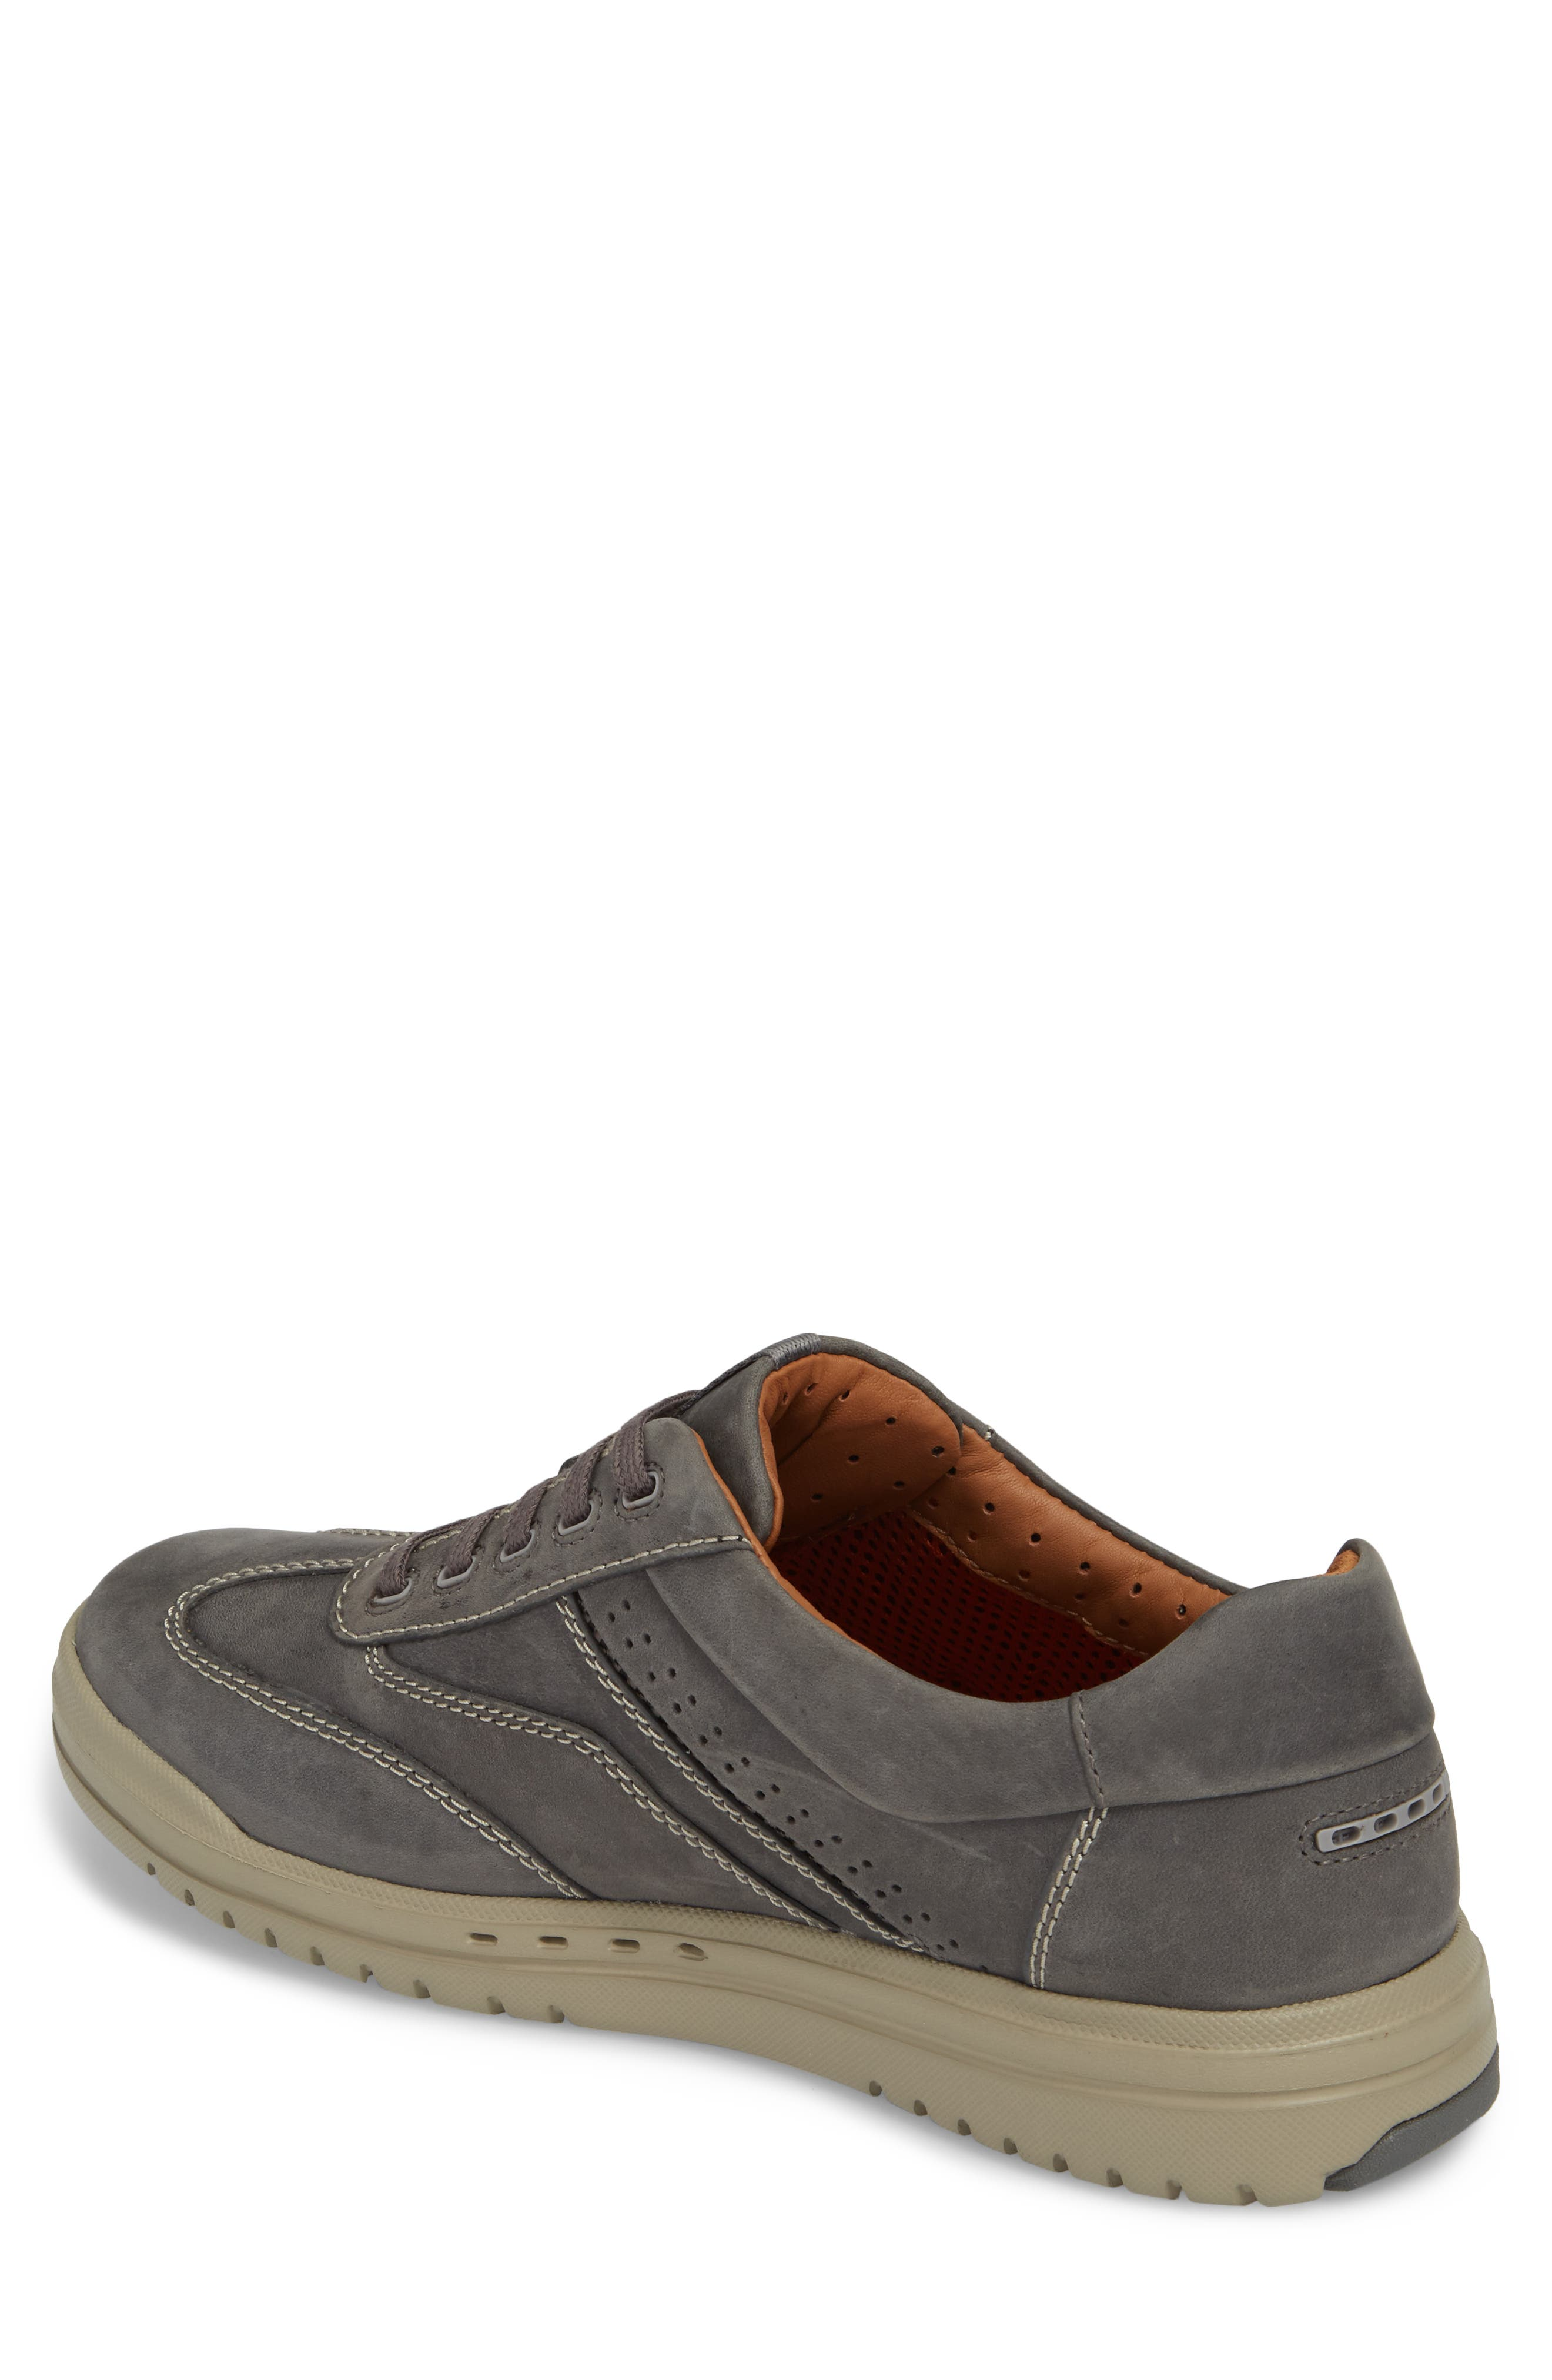 Unrhombus Low Top Sneaker,                             Alternate thumbnail 2, color,                             Dark Grey Leather